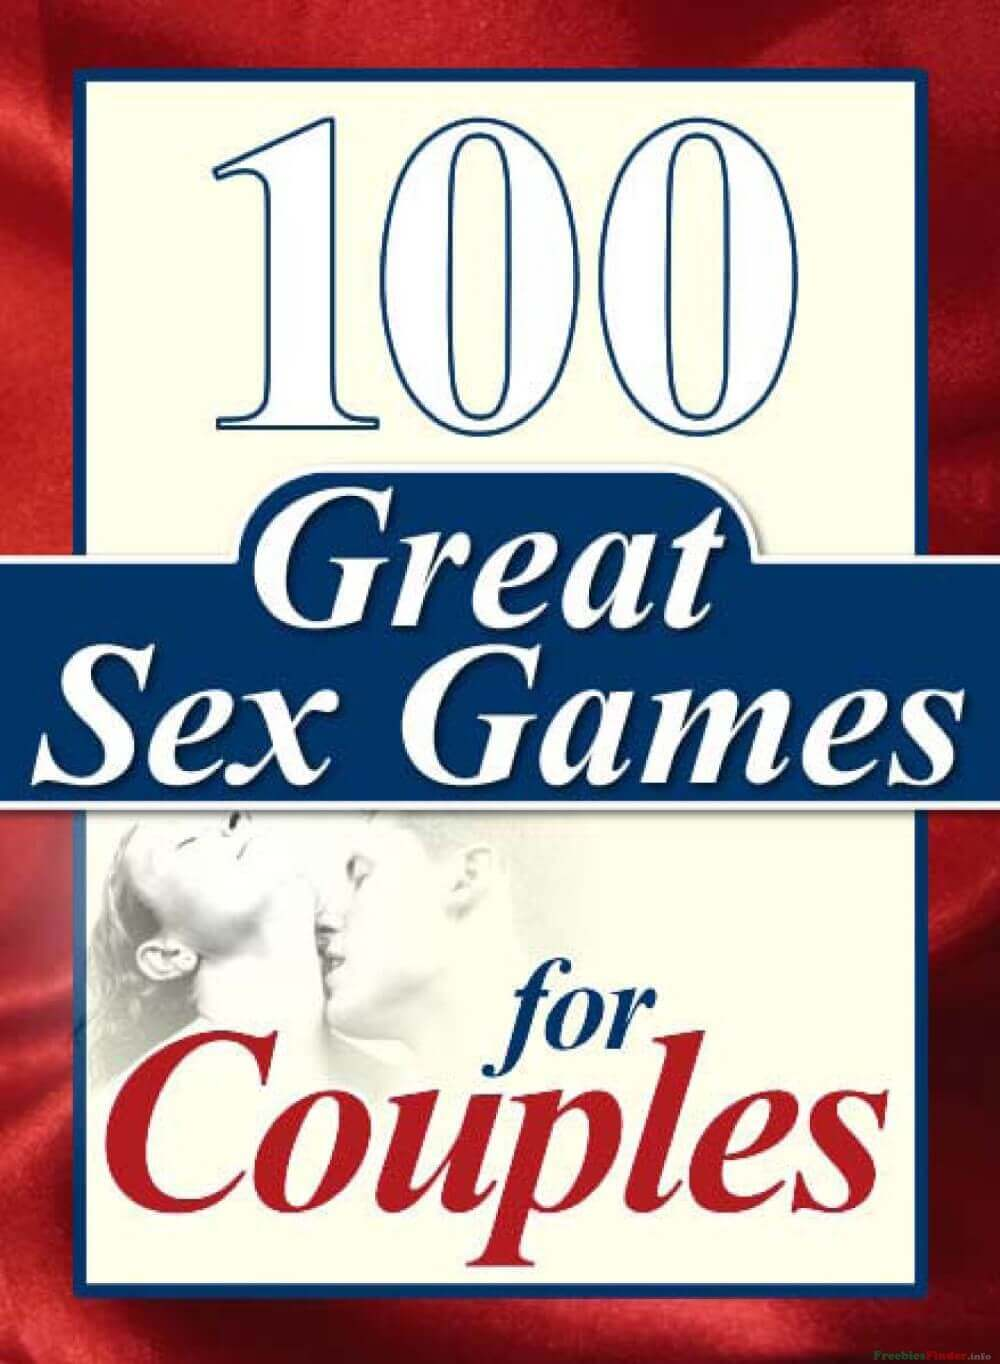 100 Great Sex Games For Couples Review - Read Before You Buy